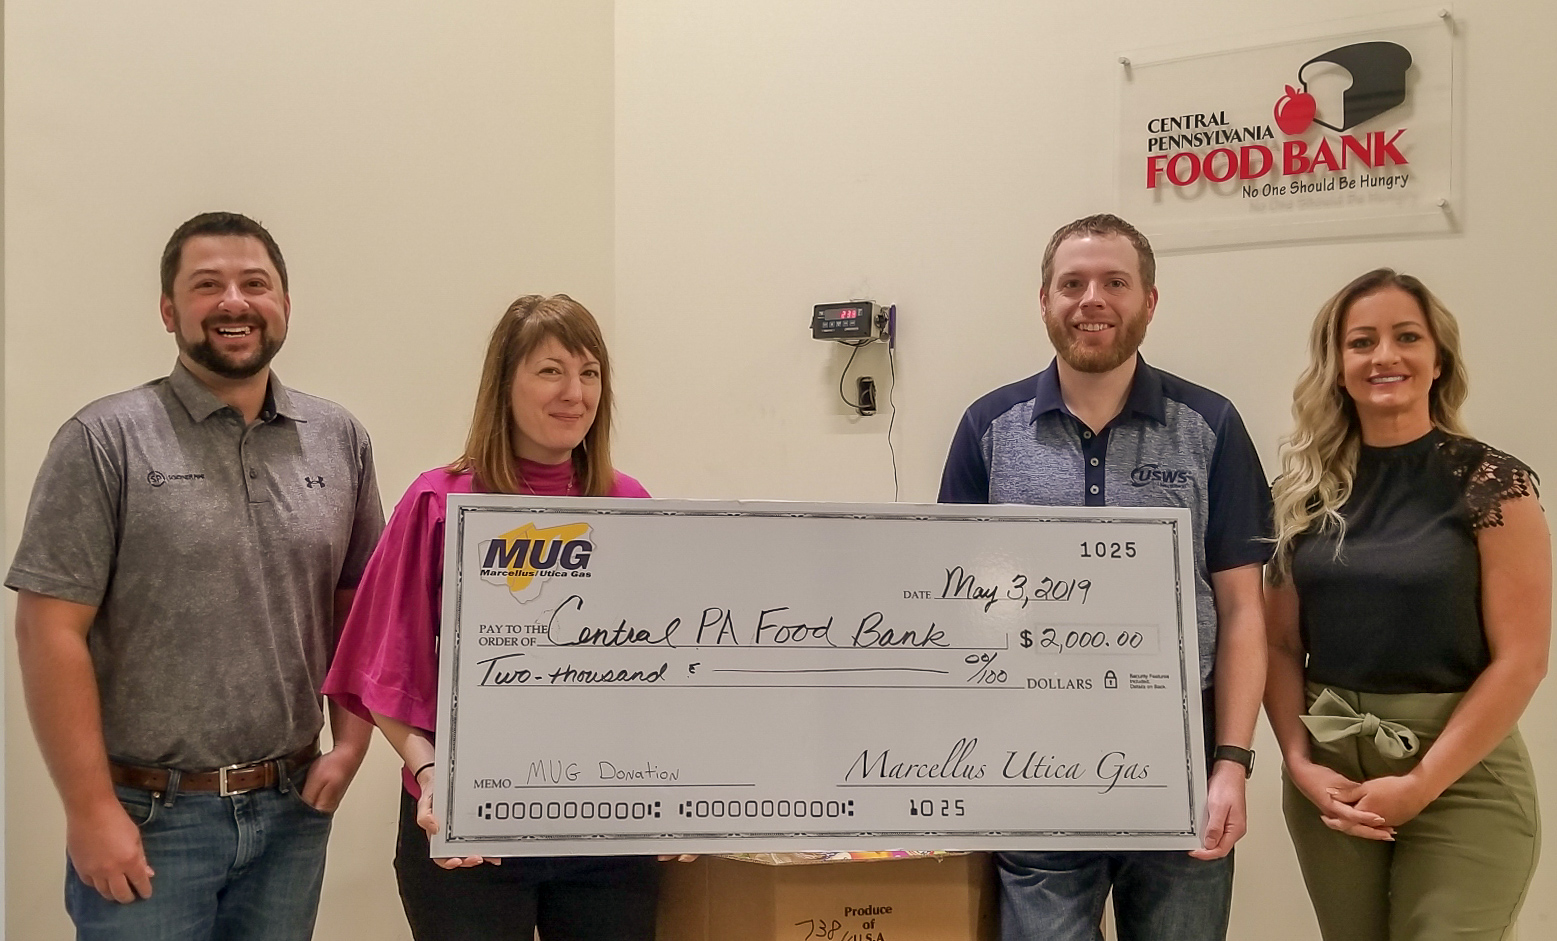 Marcellus & Utica Gas Suppliers, Services, and Manufacturers Association (MUG) Board Members Zane Johnson (Sooner Pipe), Chris LaBarte (US Well Services), and Crystal Miller (Silver Creek Services) present a check and a 325 pound food donation to the Central Pennsylvania Food Bank in Williamsport, PA.